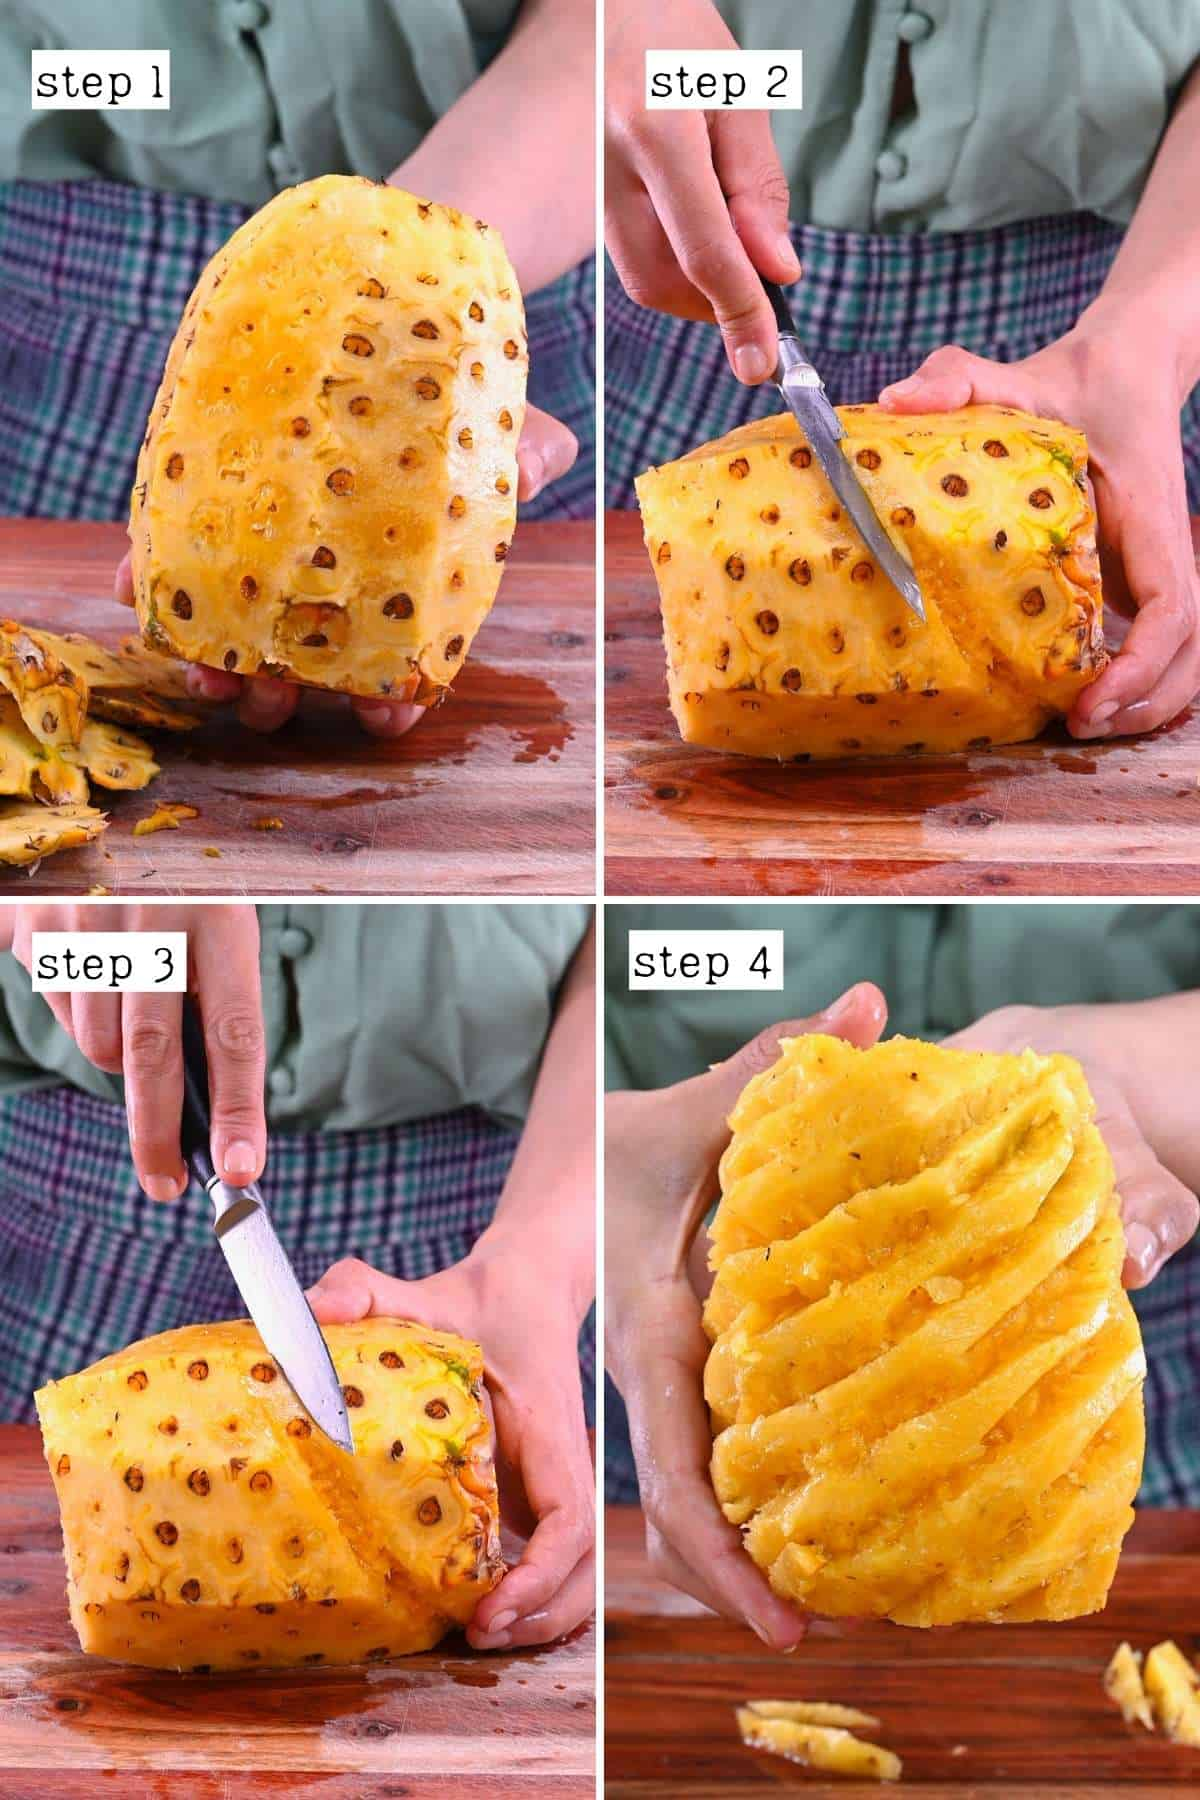 Steps for cleaning a pineapple